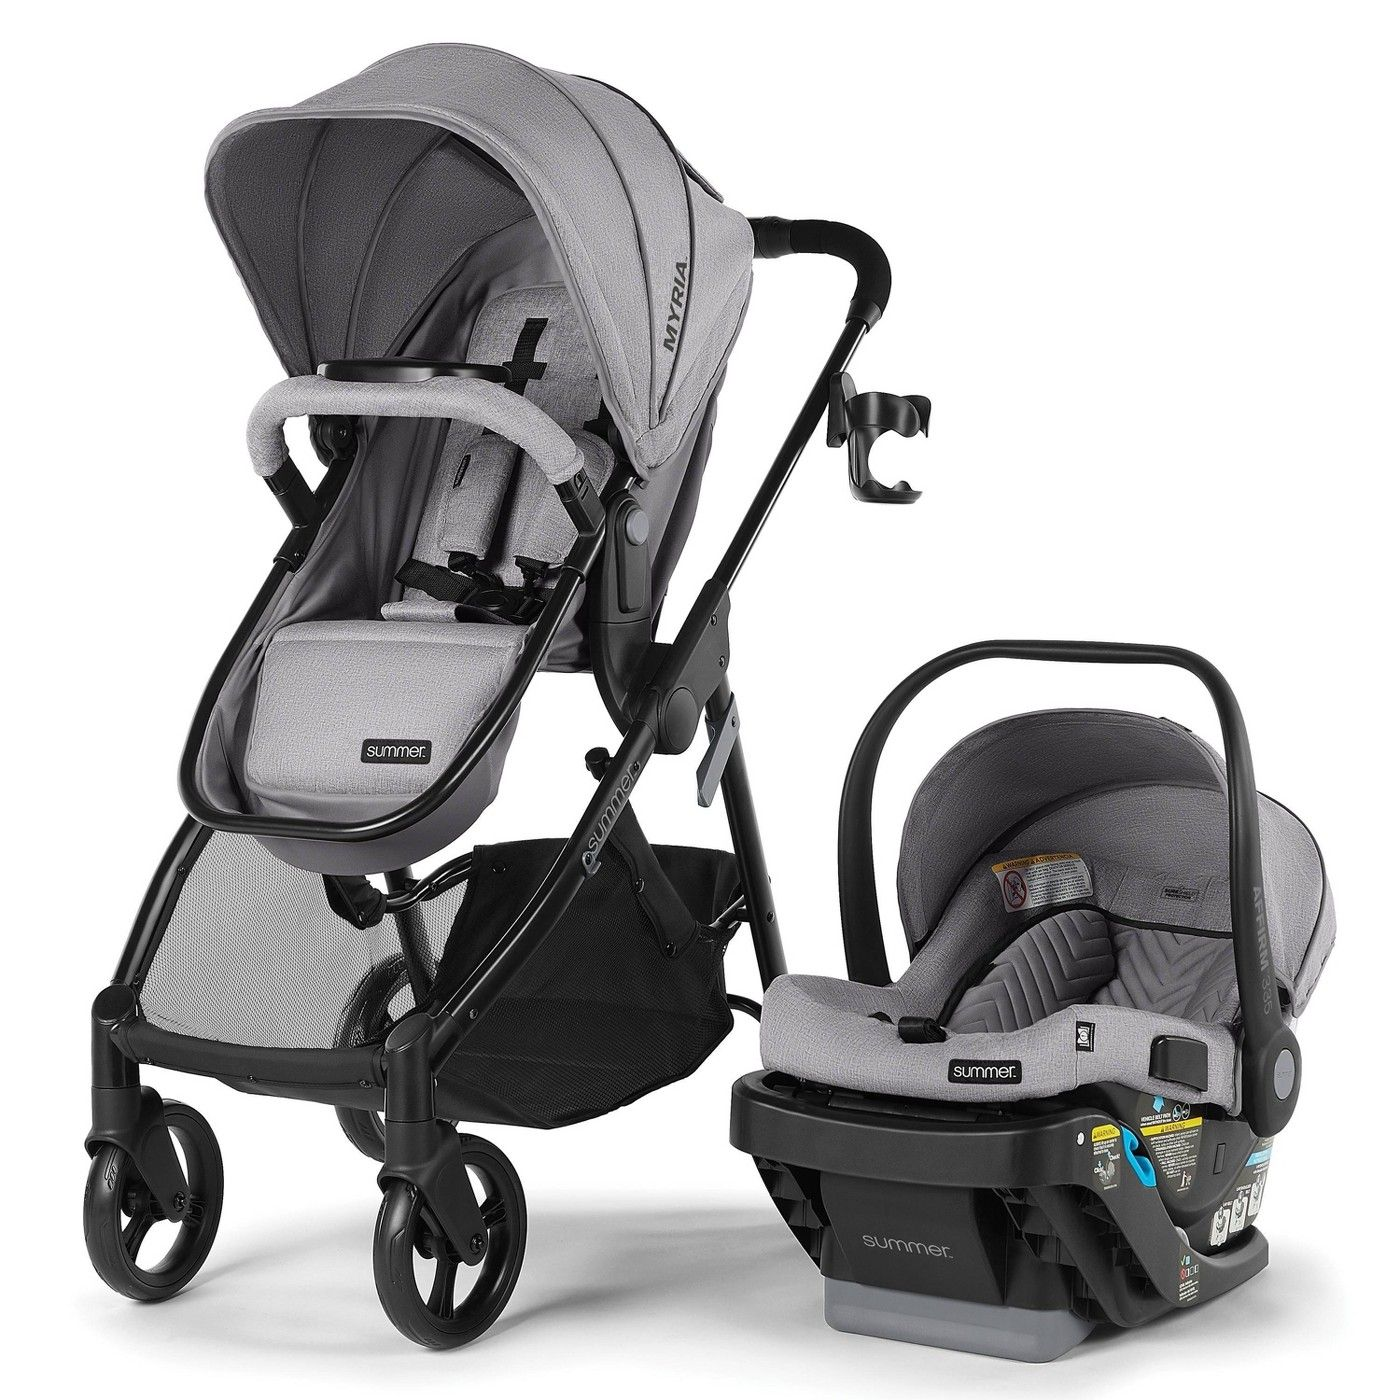 Summer Infant Myria Modular Travel System with Affirm 335